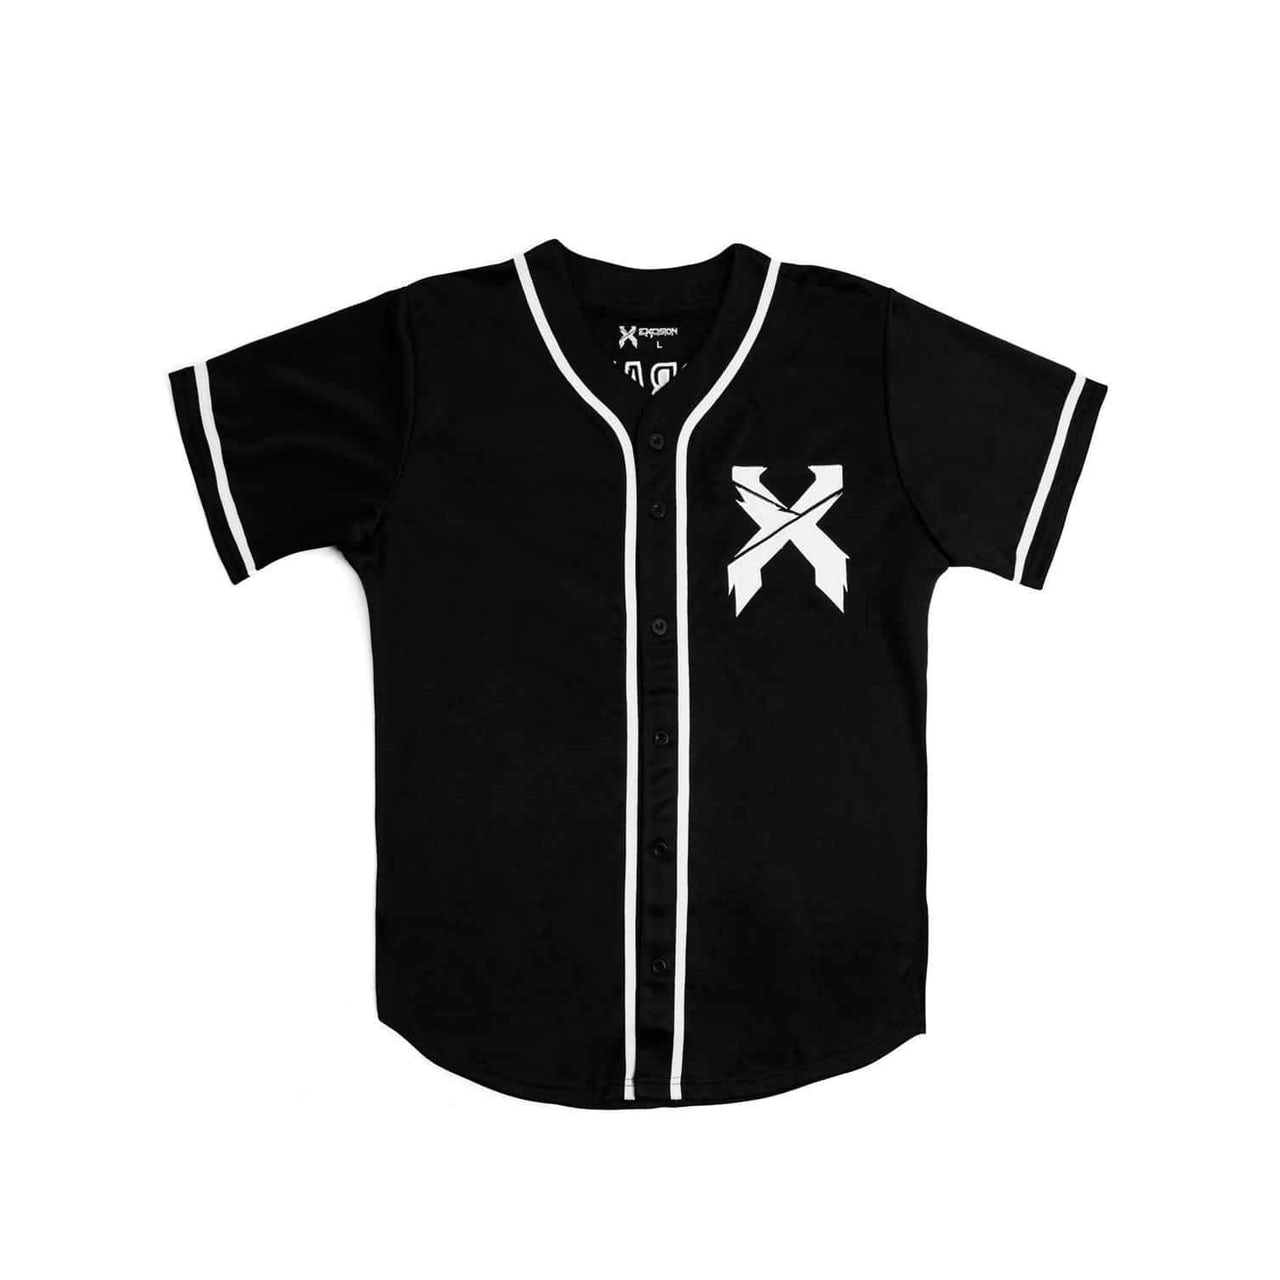 quality design 8a17f 62239 Excision Baseball Jersey - Black/White